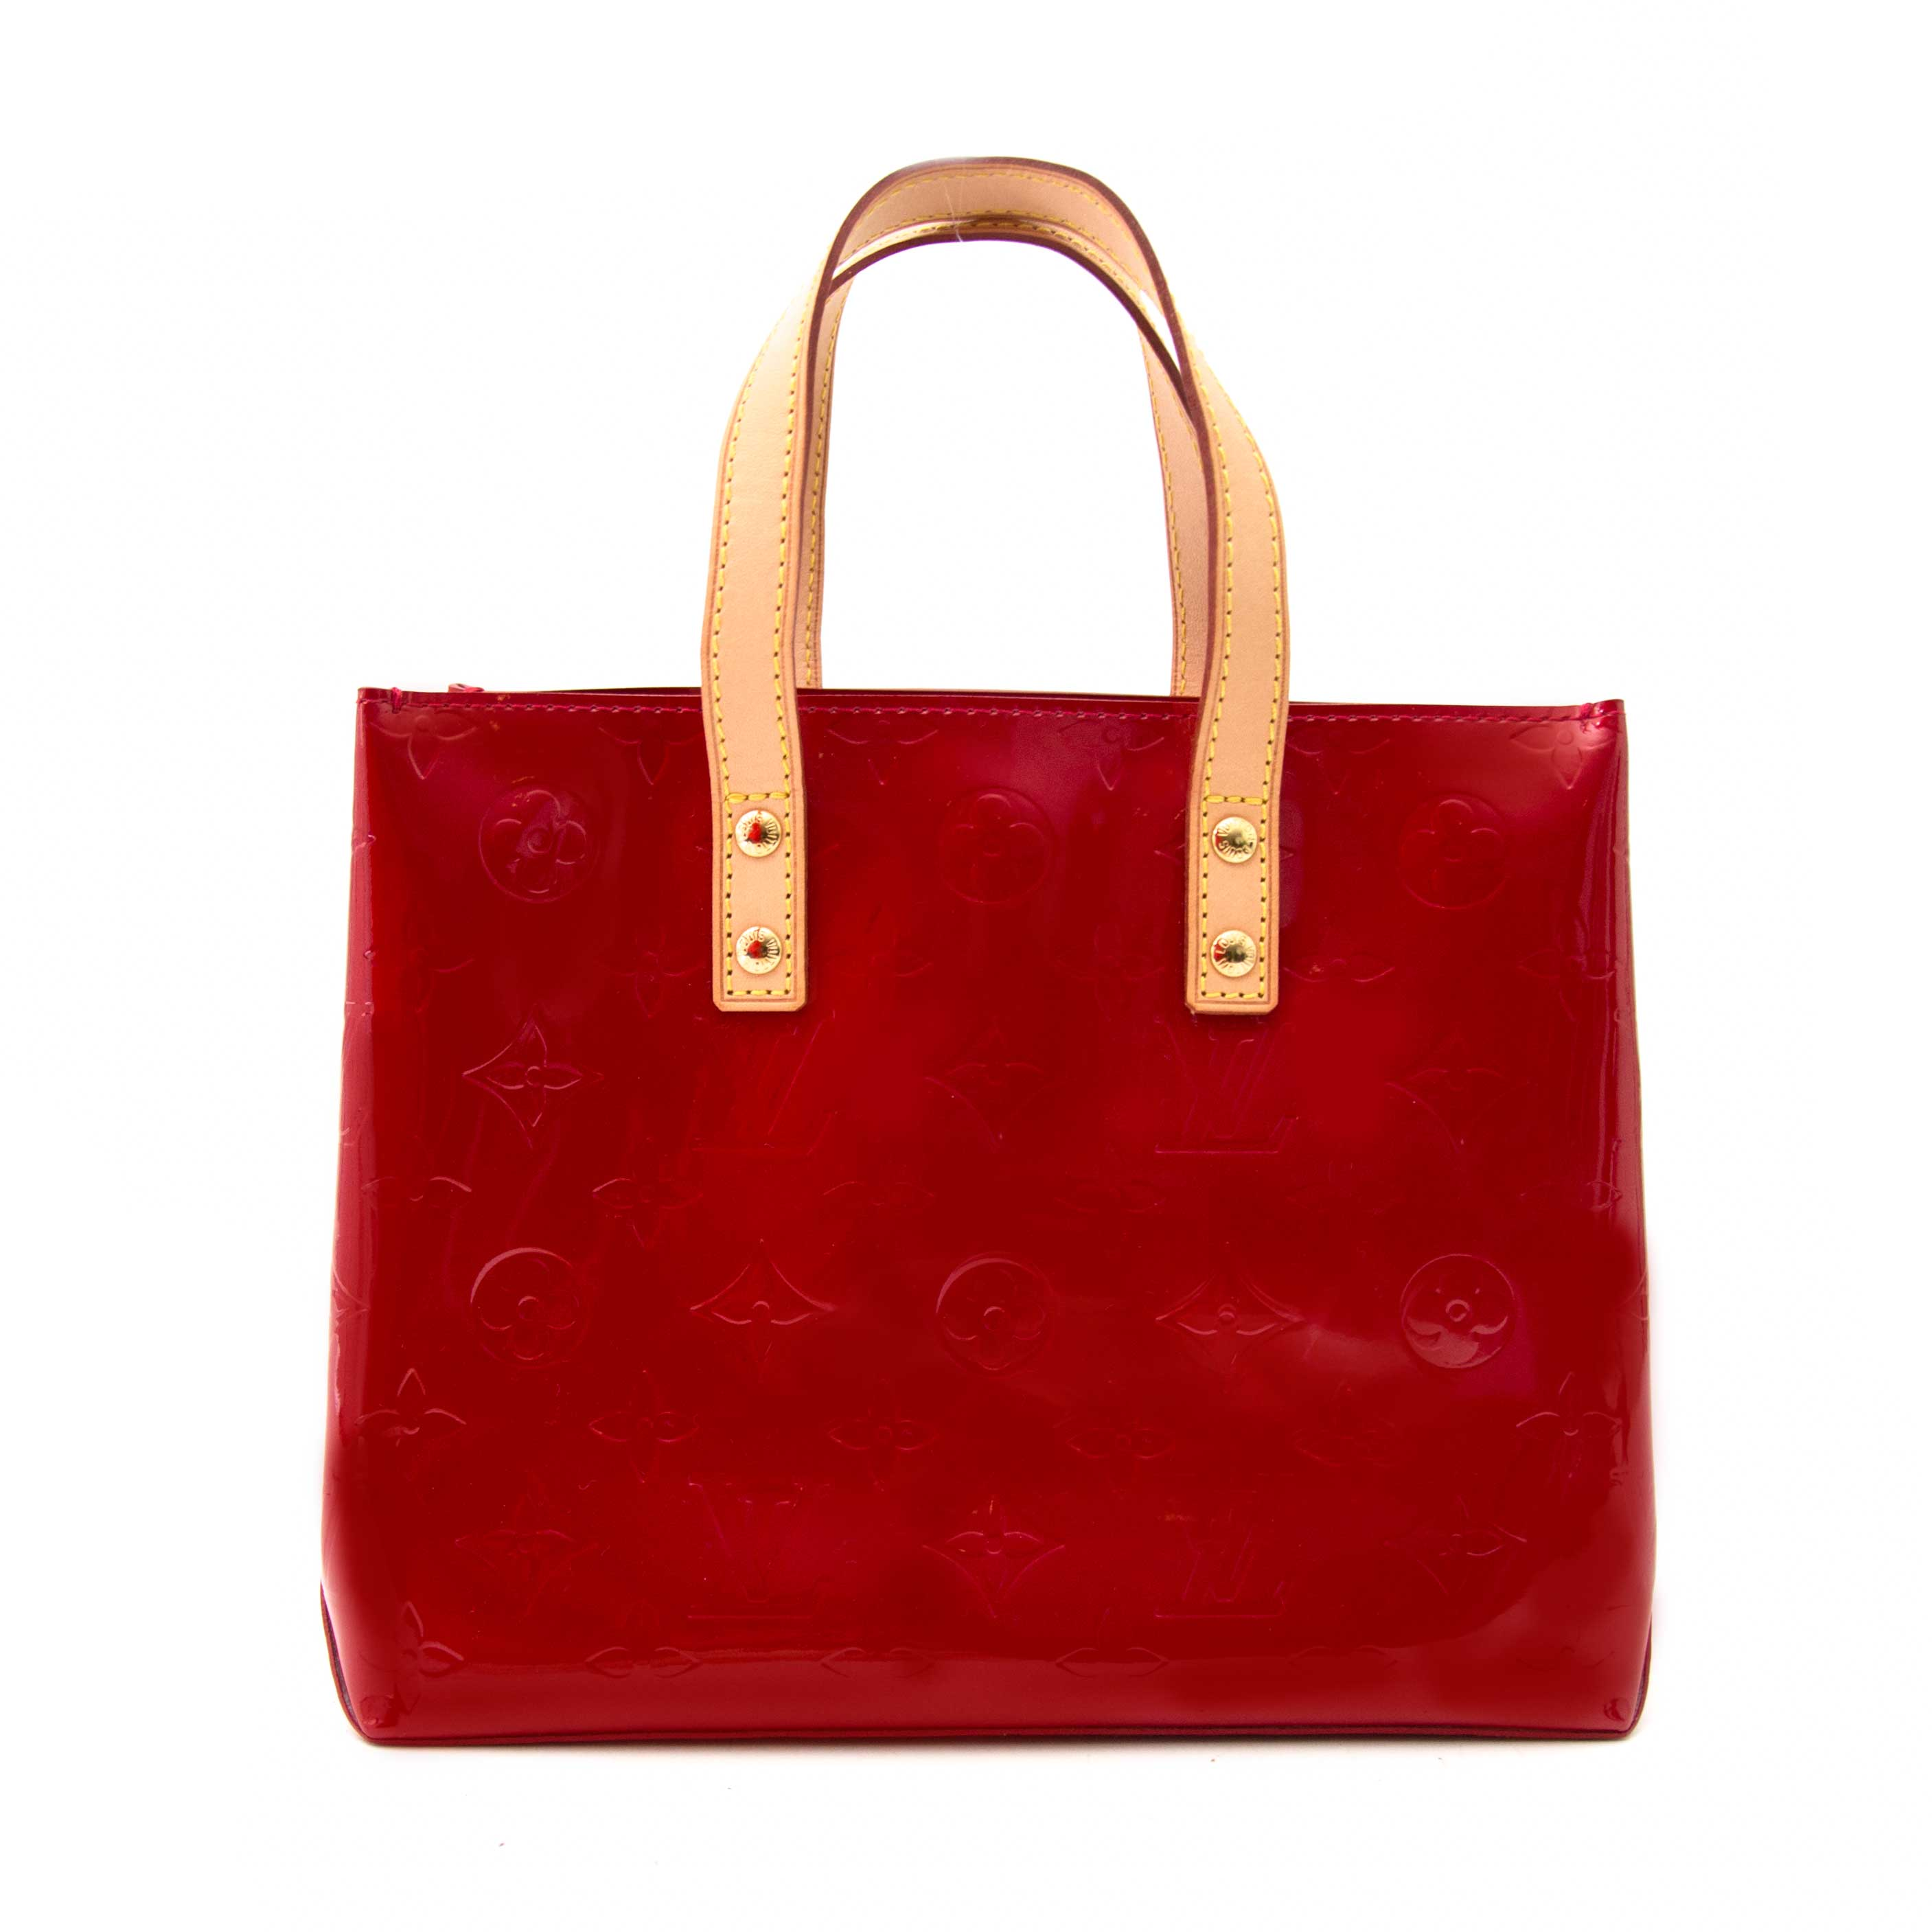 shop online your secondhand Louis Vuitton Mini Reade Red Vernis Leather Tote Bag